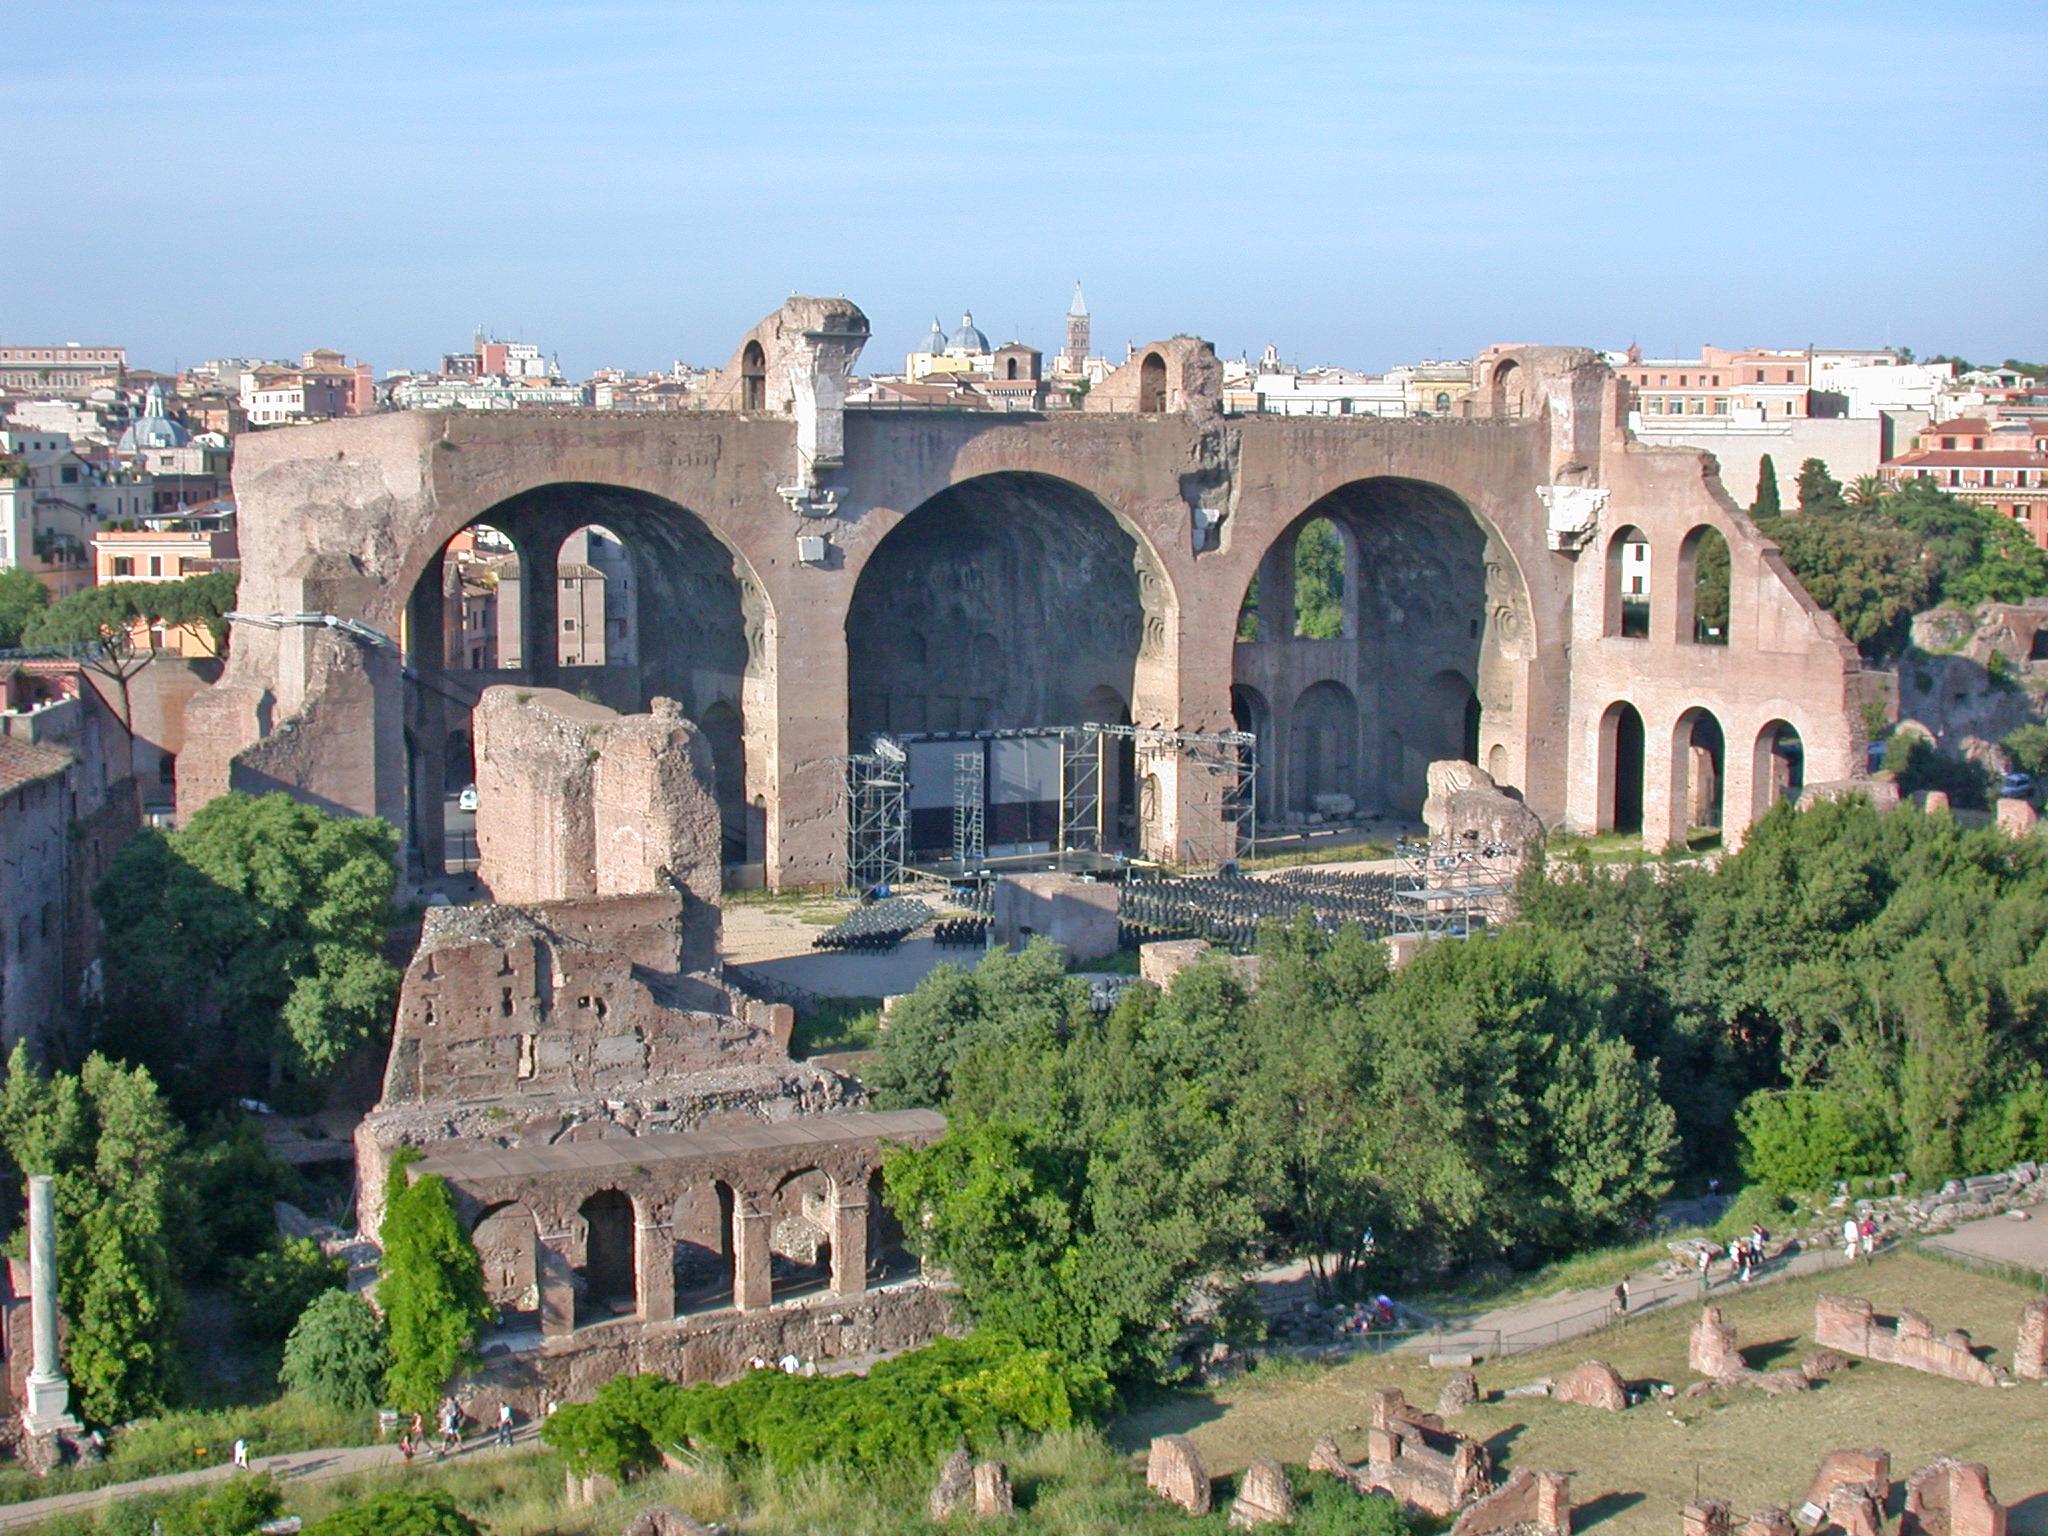 Forum Romanum, archeological area, Basilica of Maxentius and Constantine, view from Palatine hill